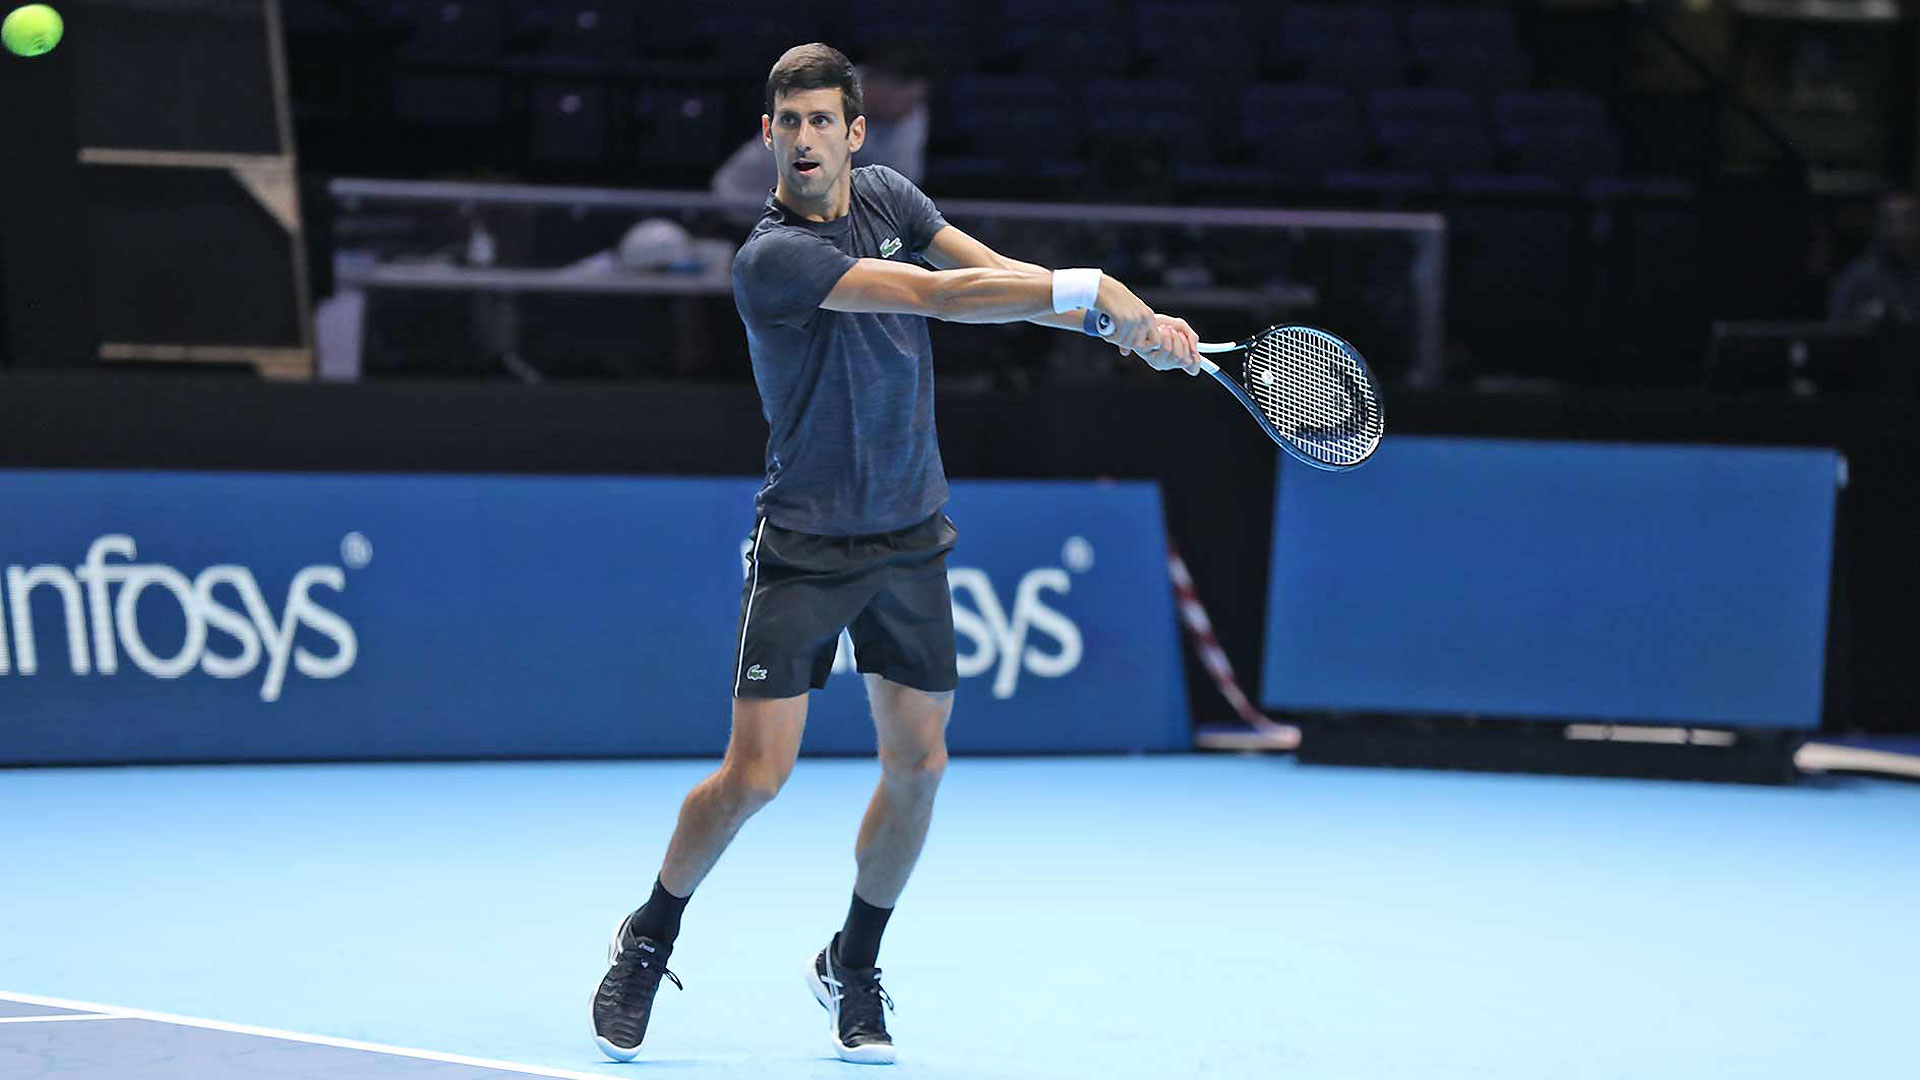 Djokovic Federer Zverev Train At The O2 Ahead Of Nitto Atp Finals